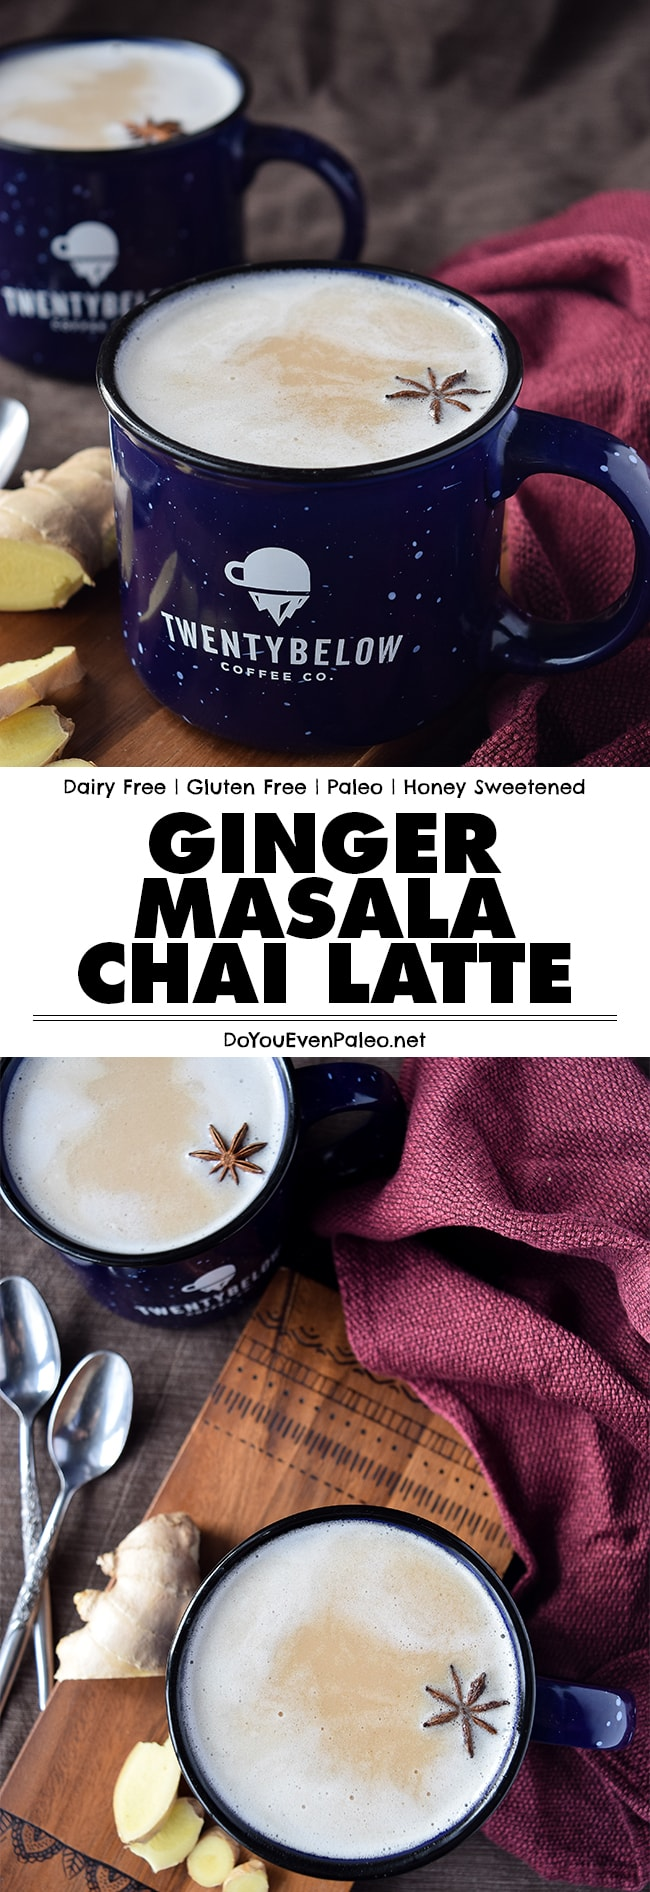 This homemade Ginger Masala Chai Latte features the rustic, spicy flavor of ginger along with all the other well-known chai spices! It's dairy free, honey sweetened, and paleo. | DoYouEvenPaleo.net